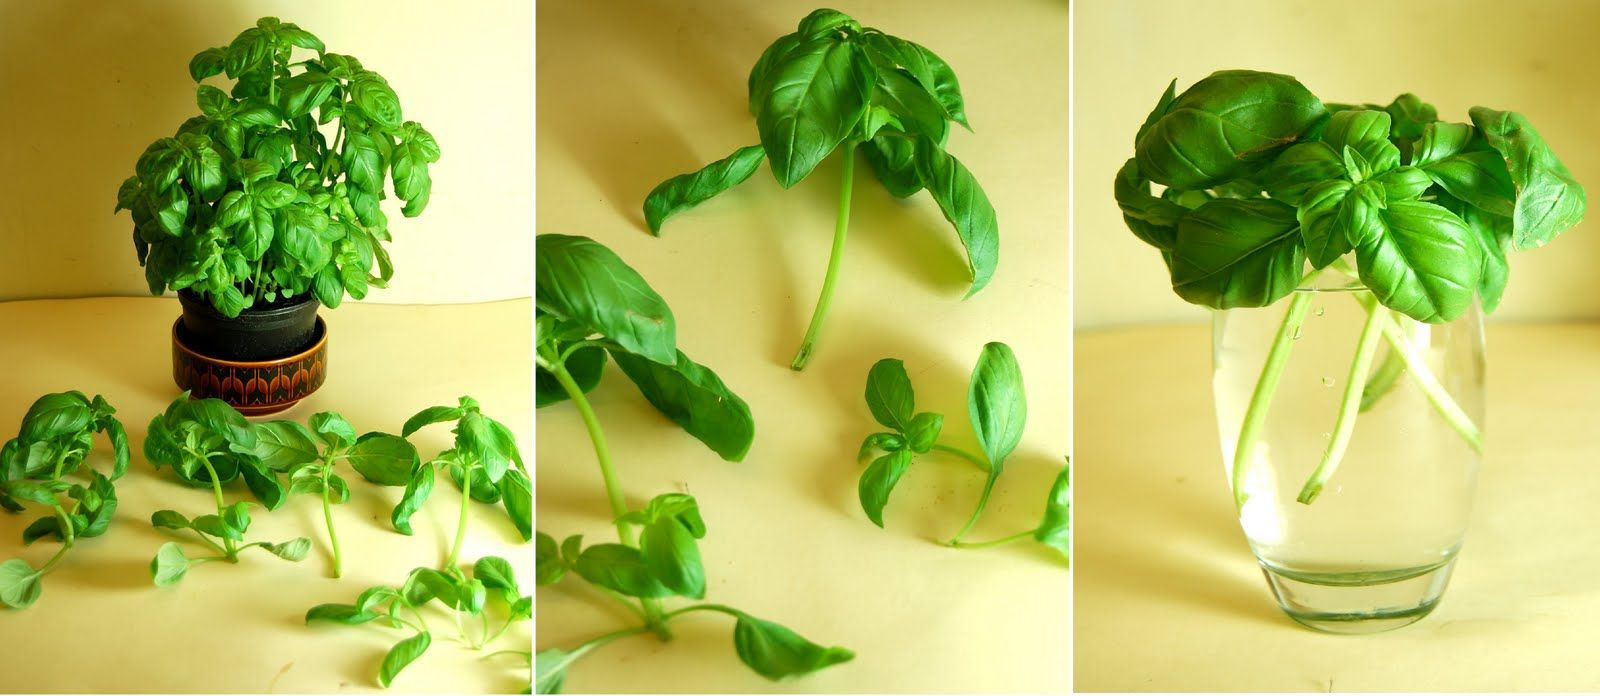 I Never Have Much Luck Growing Basil From Seed Or Keeping Plants Bought Supermarkets